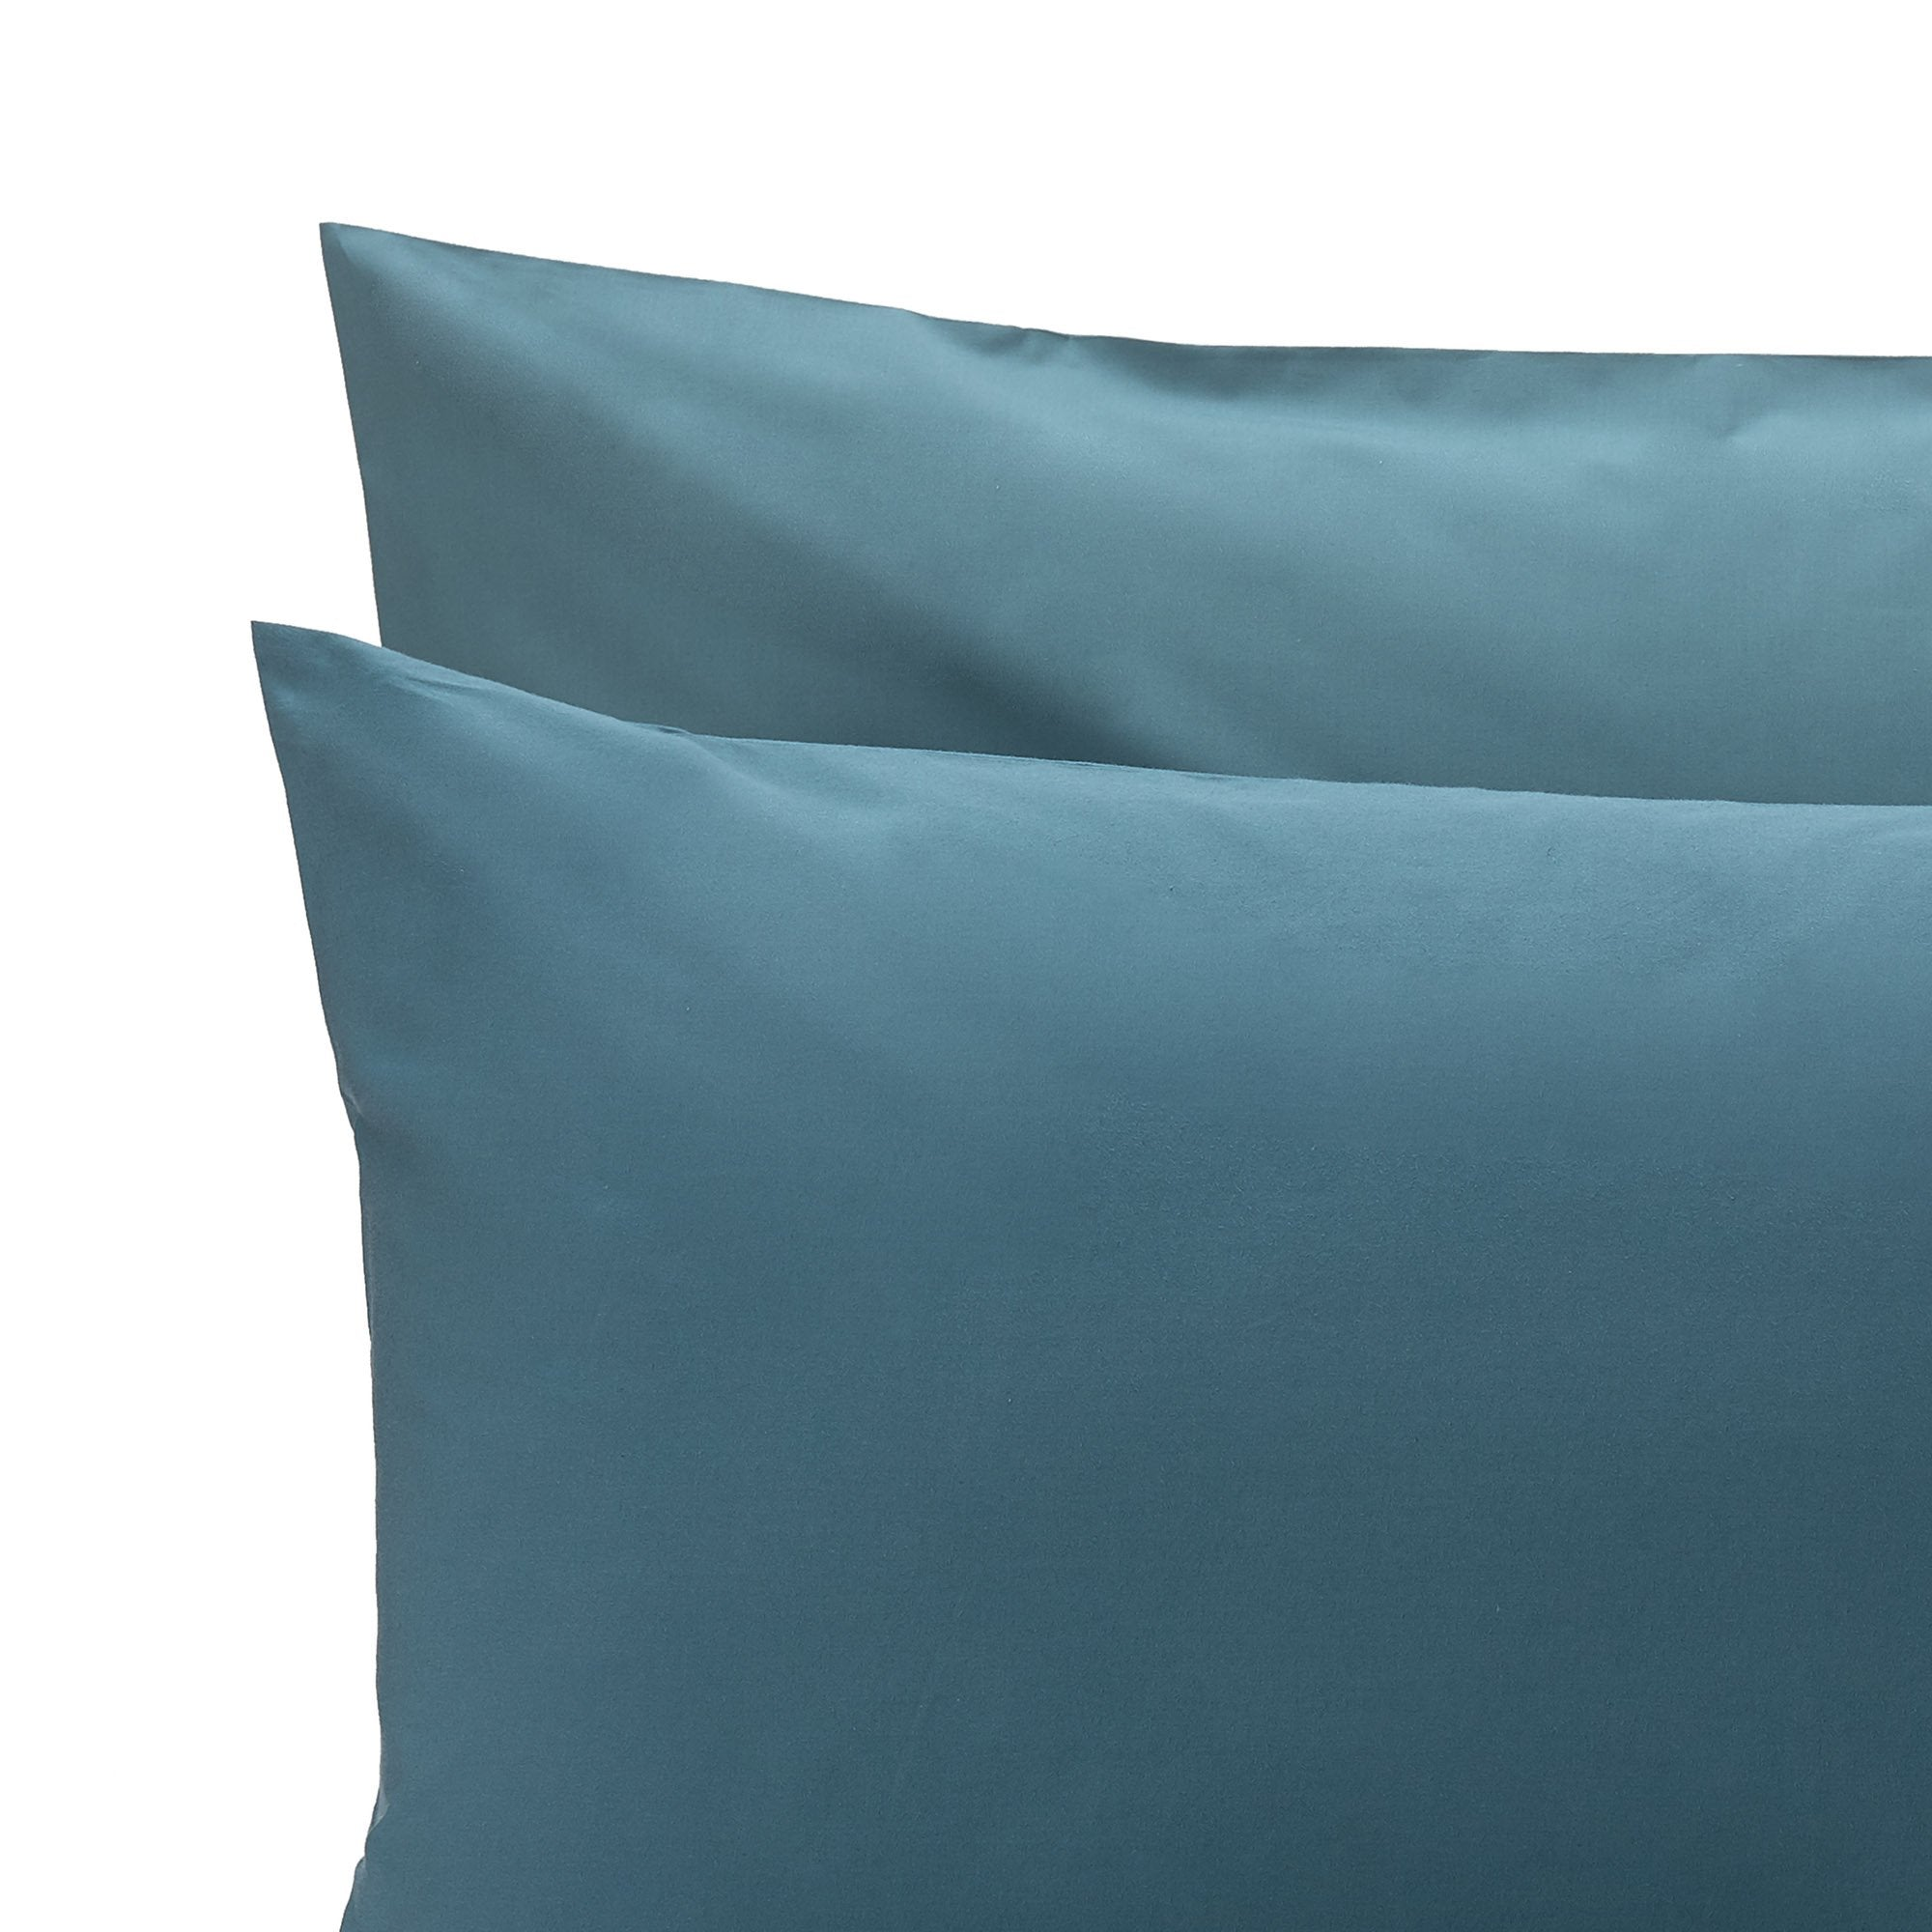 Perpignan Bed Linen in teal | Home & Living inspiration | URBANARA